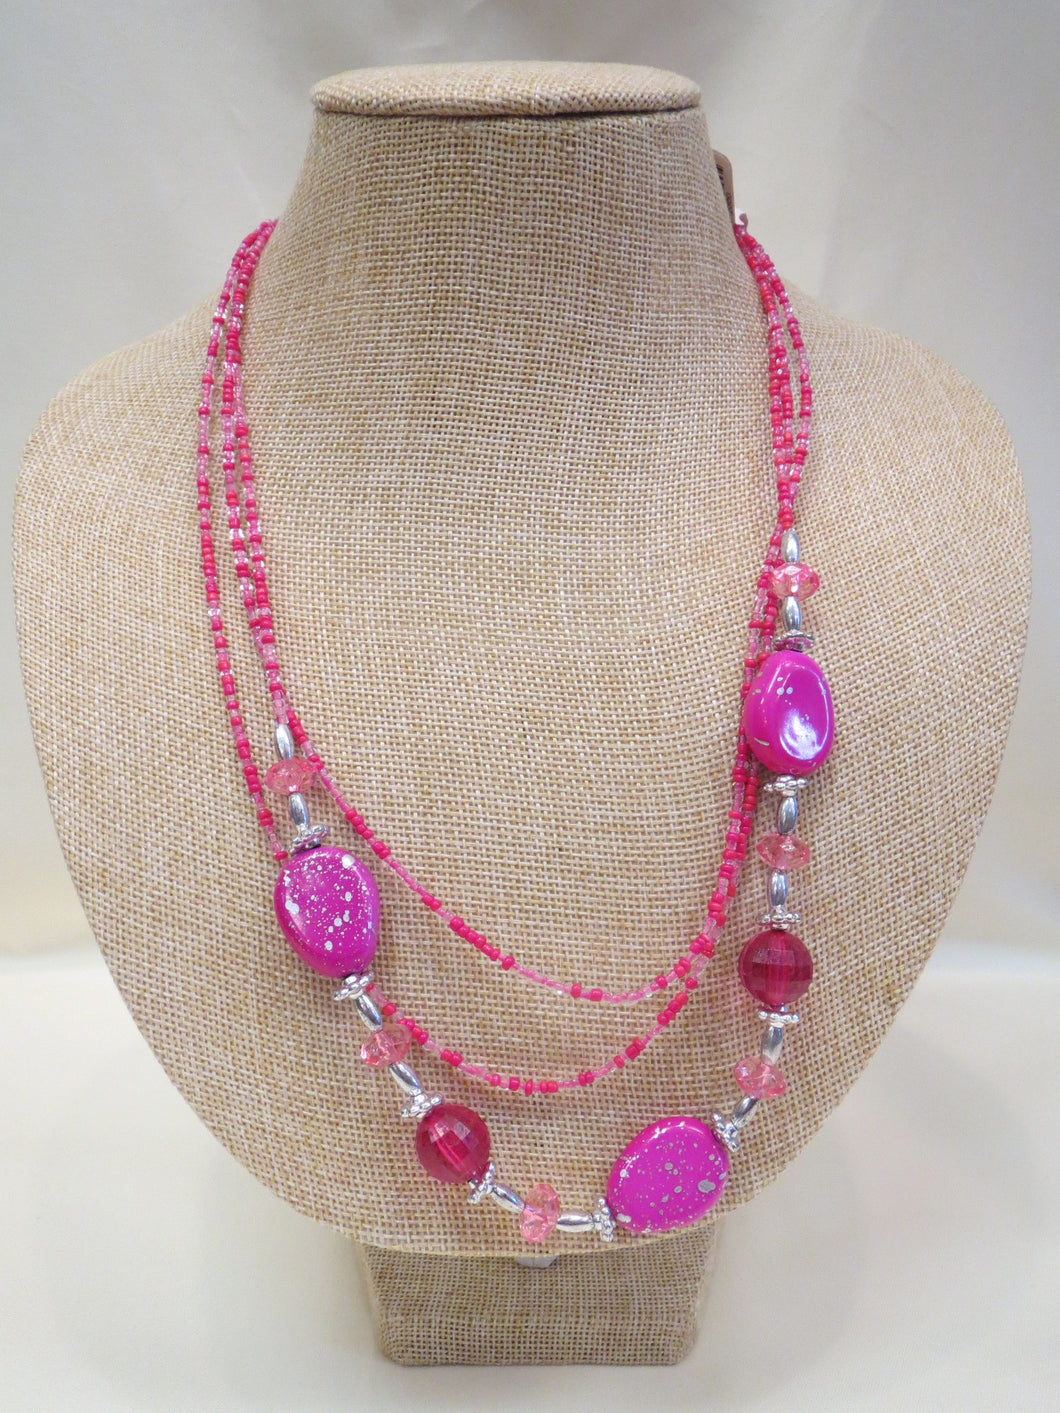 ADO Pink & Silver Layer Fashion Necklace | All Dec'd Out